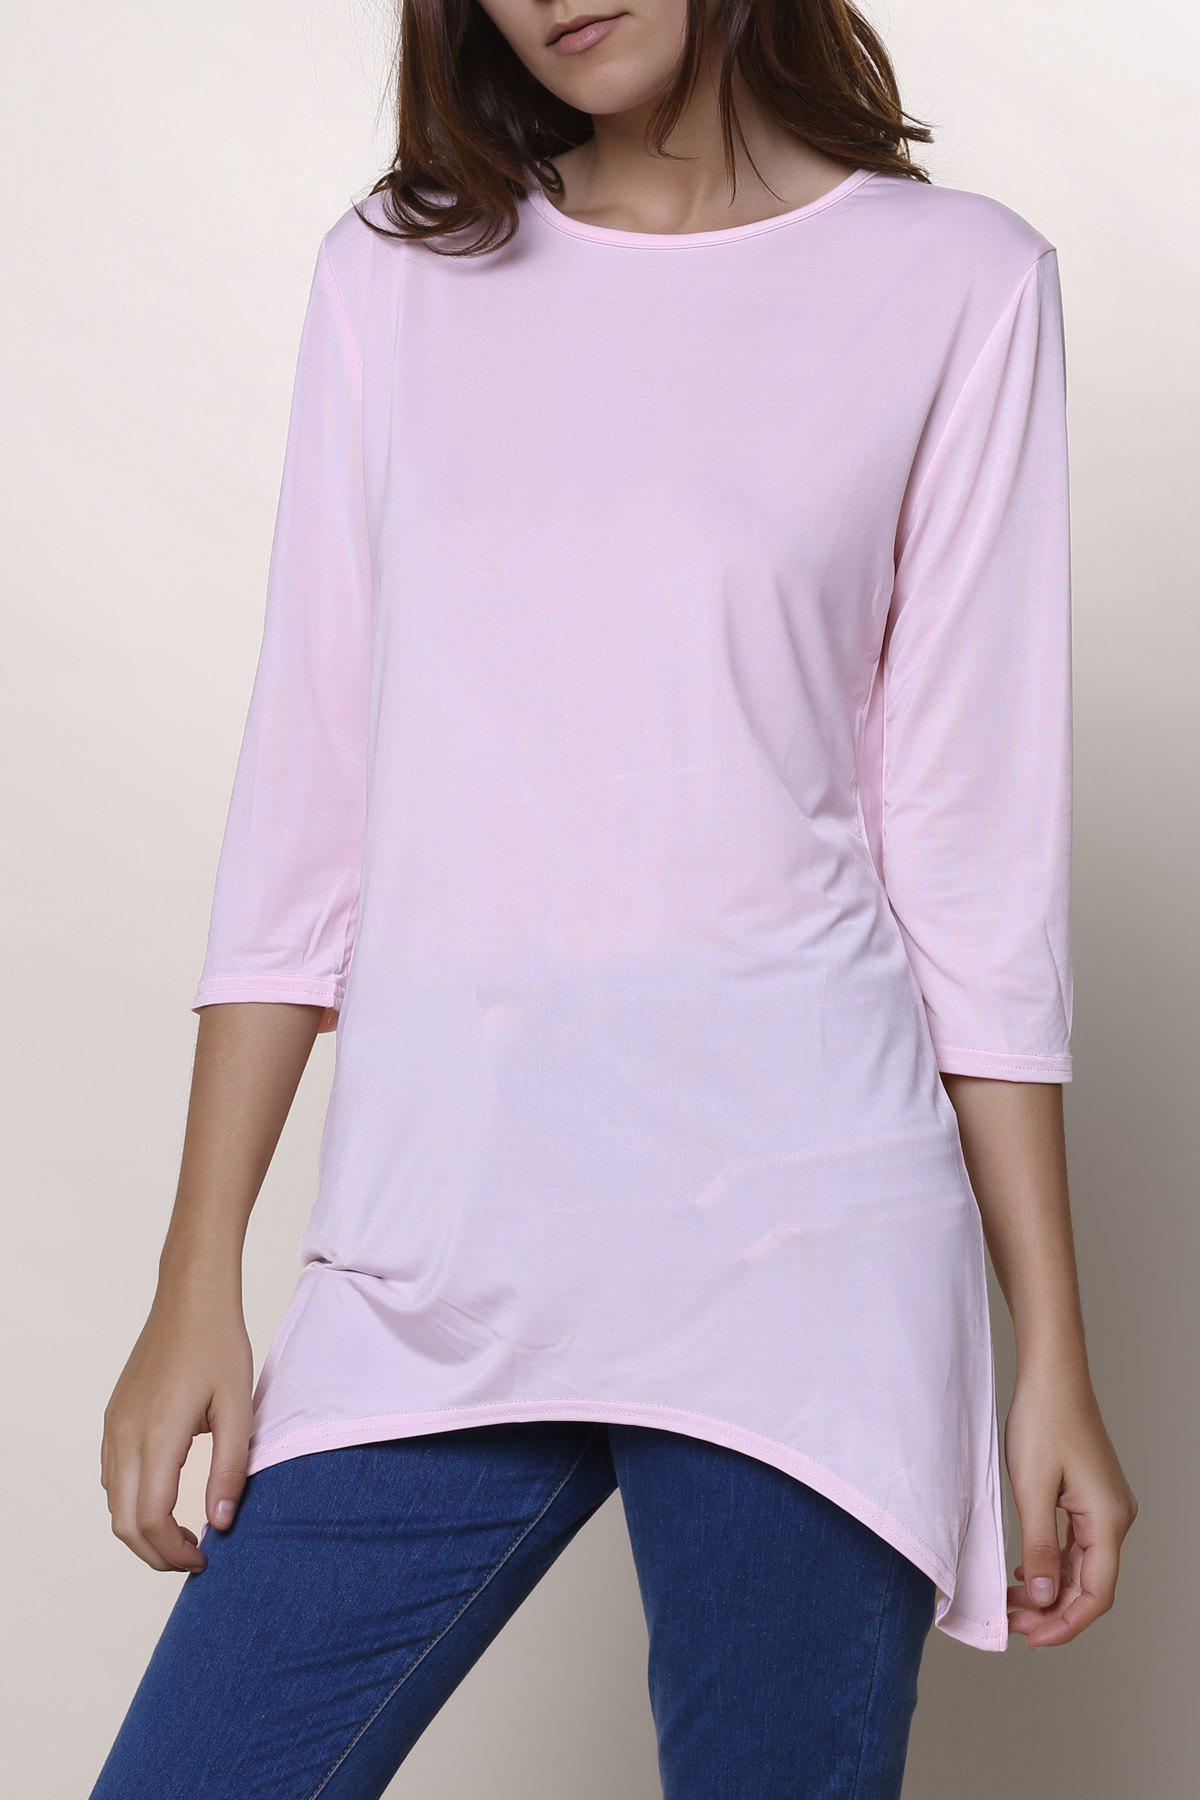 Sweet High Low Hem Round Neck Solid Color 3/4 Sleeve T-Shirt For Women - PINK S